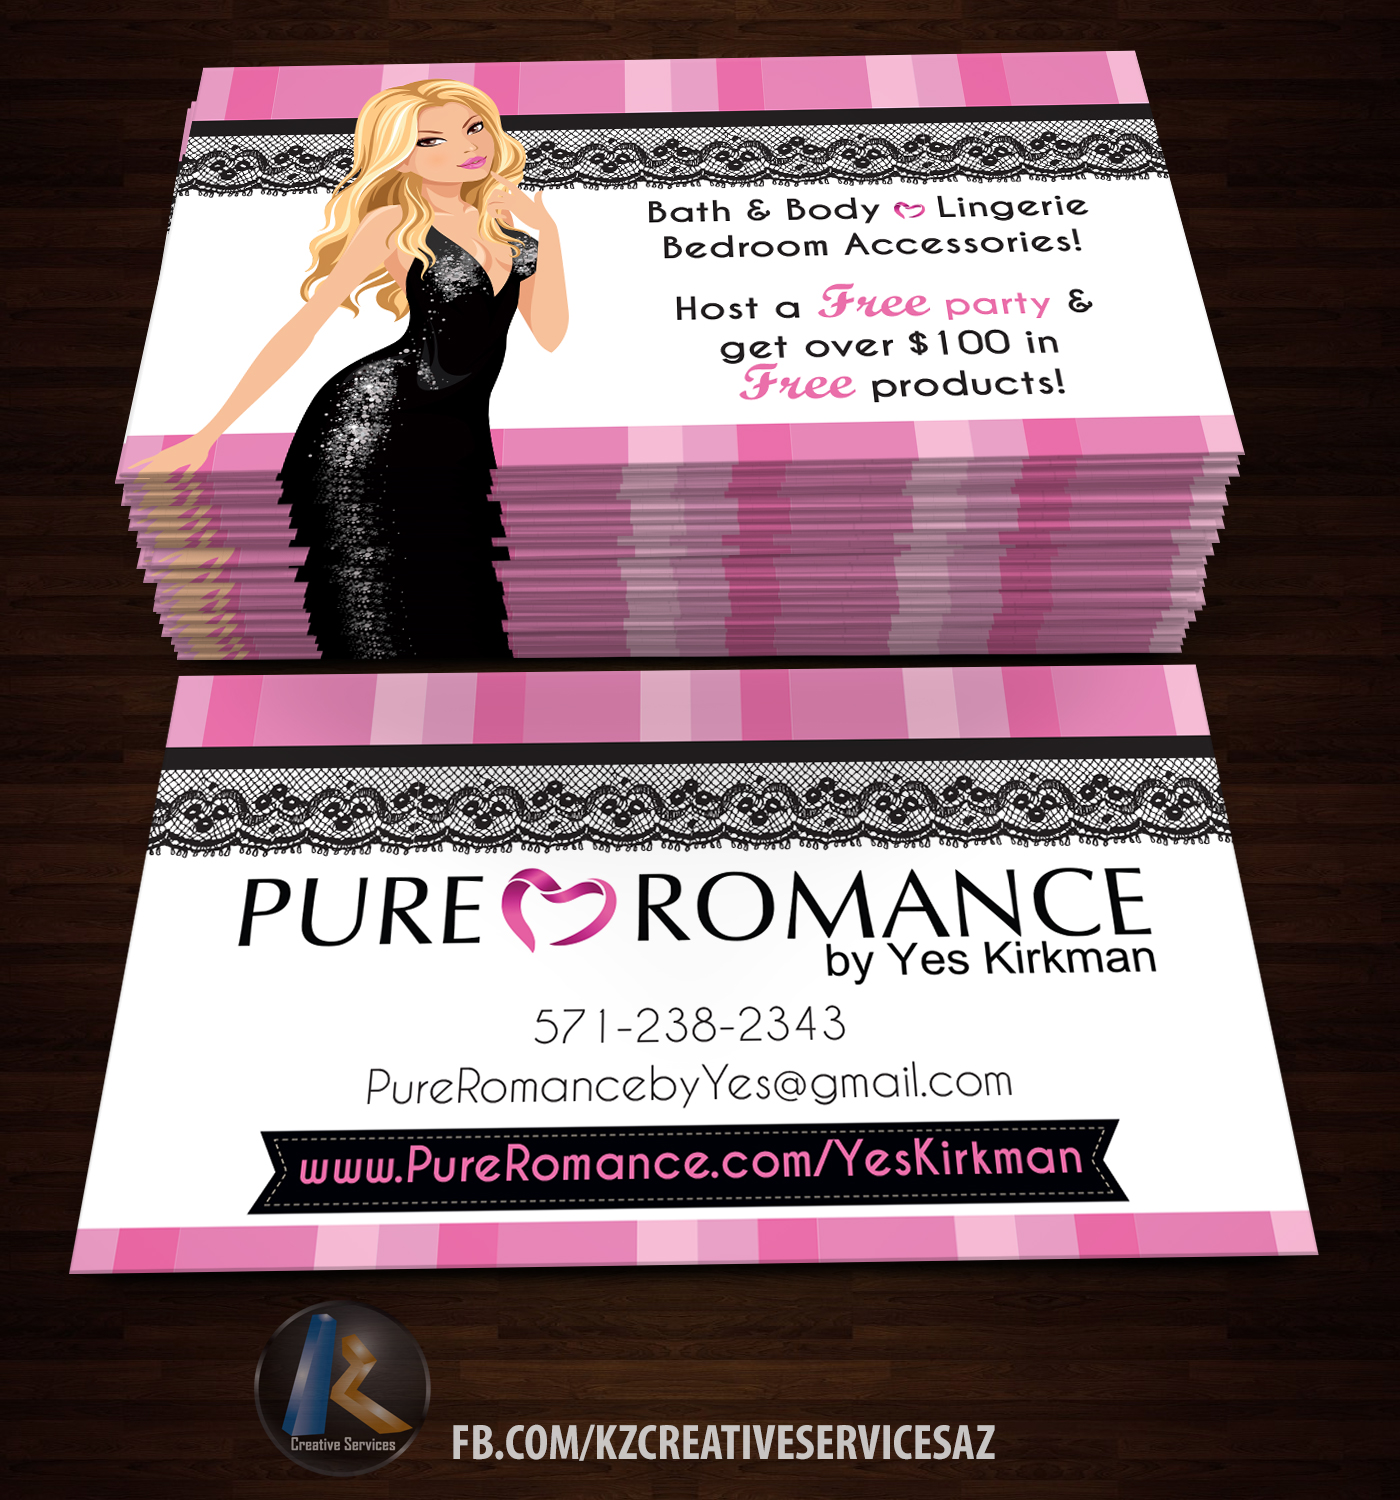 Pure Romance Business Cards style 2 · KZ Creative Services